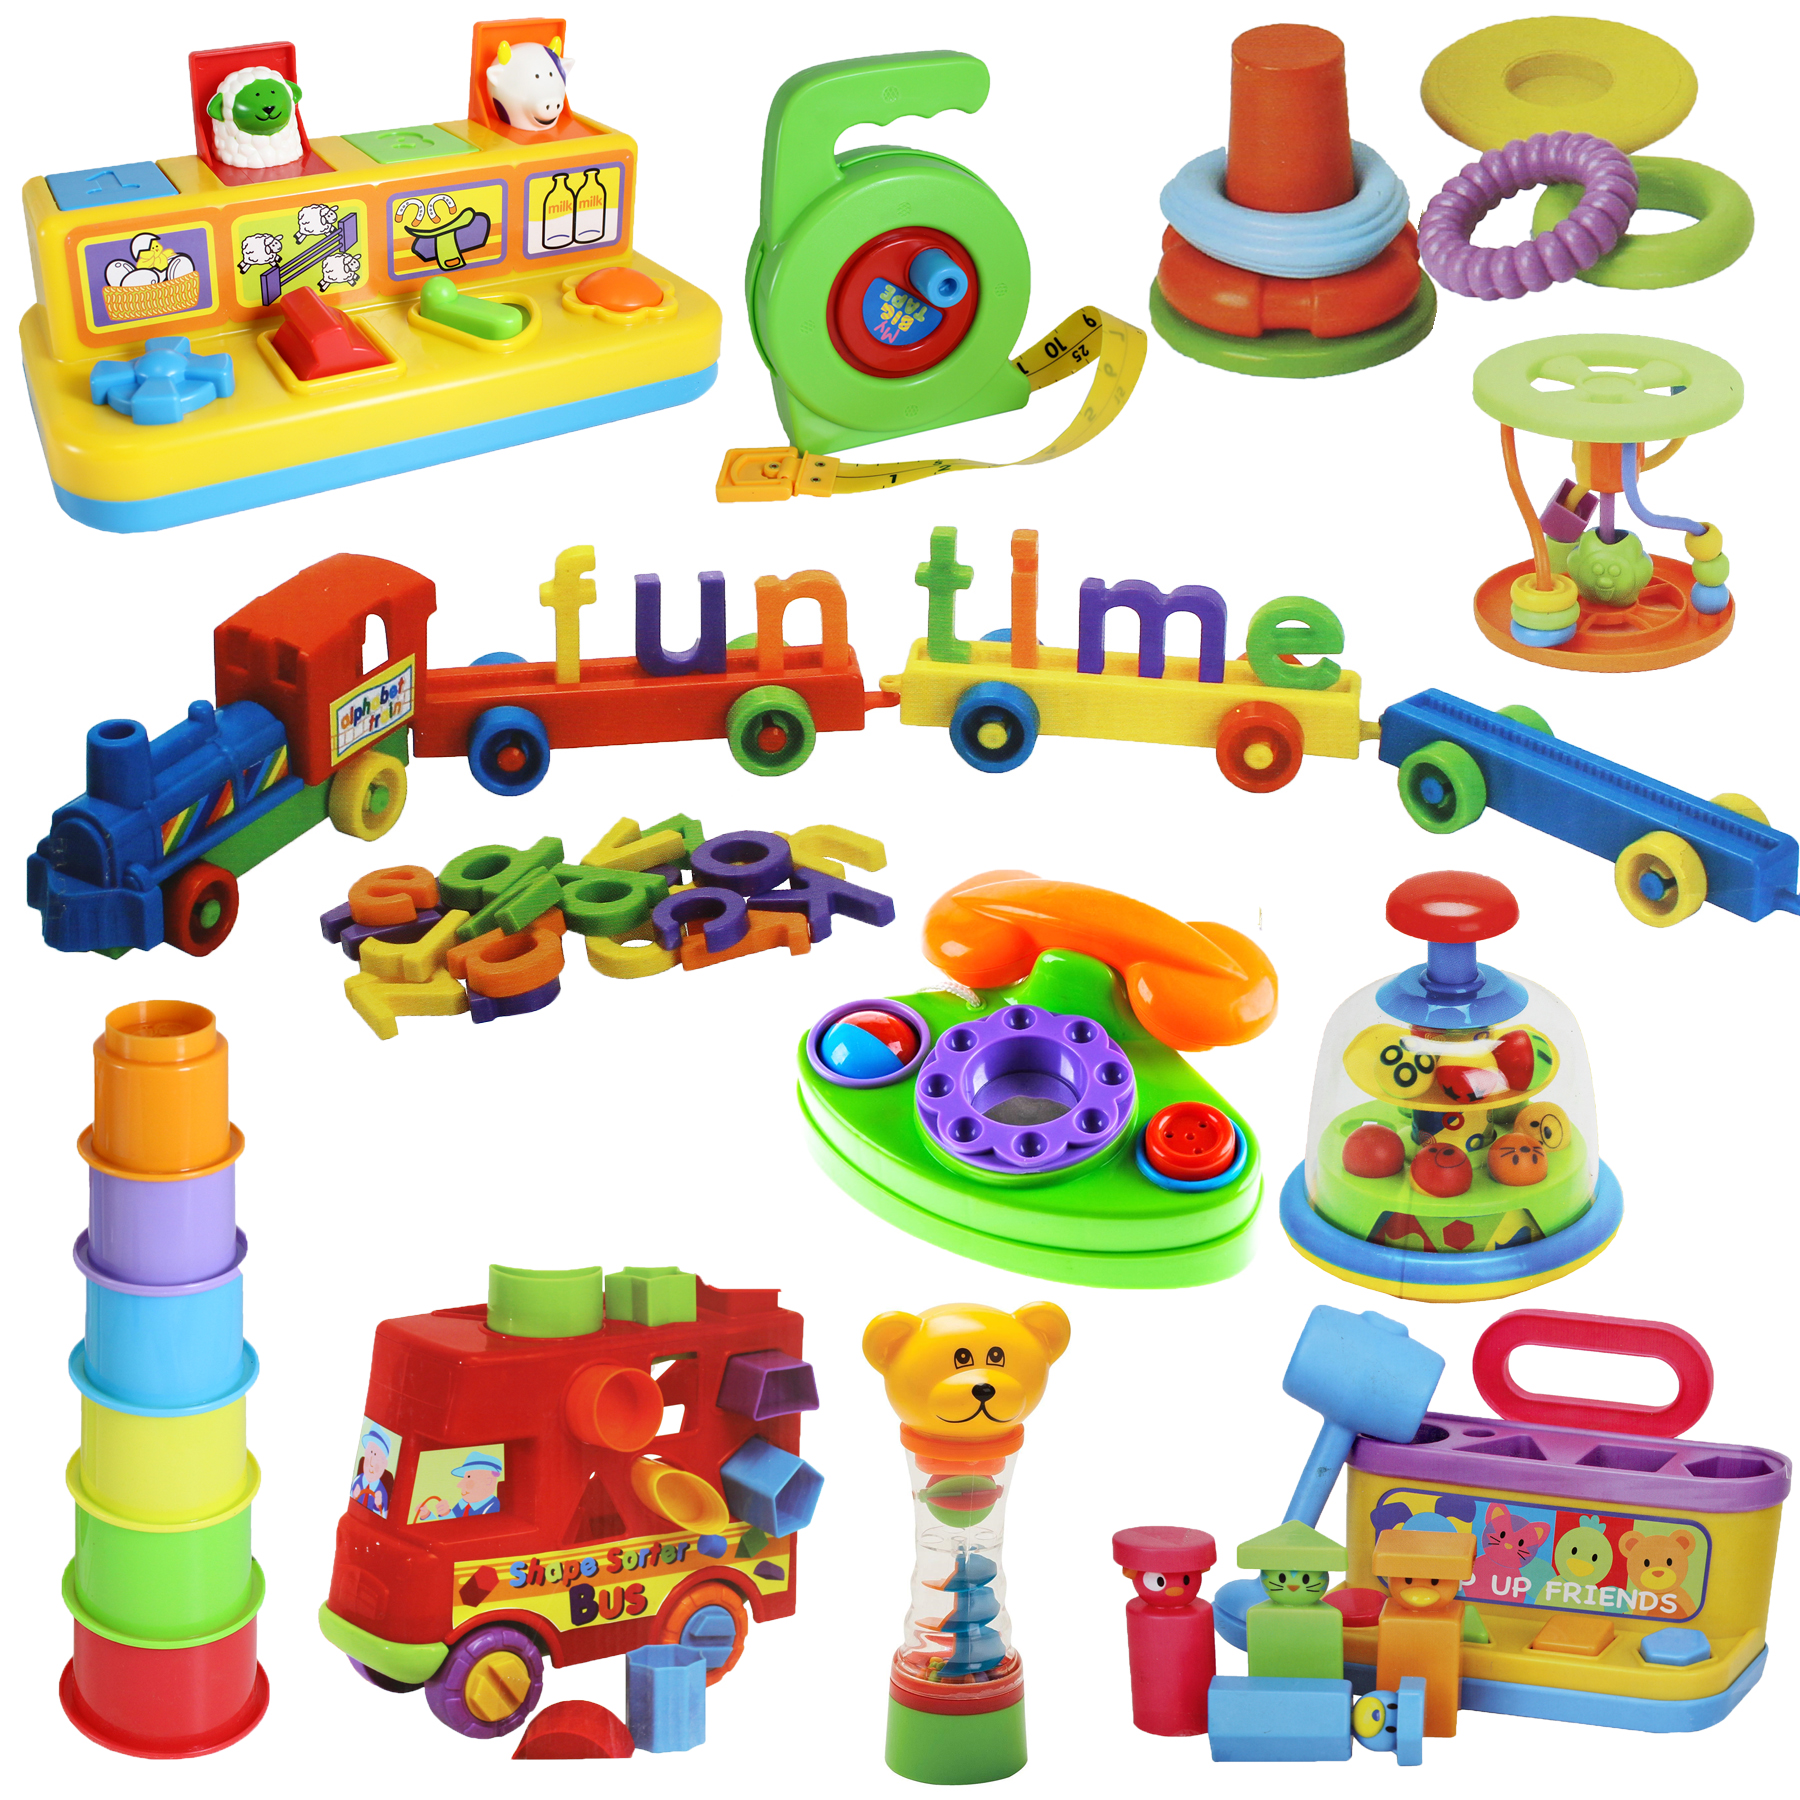 Babies Interactive Toys Details About Baby Colourful Interactive Toys Shape Sorters Cups Links From Birth 36 Mths